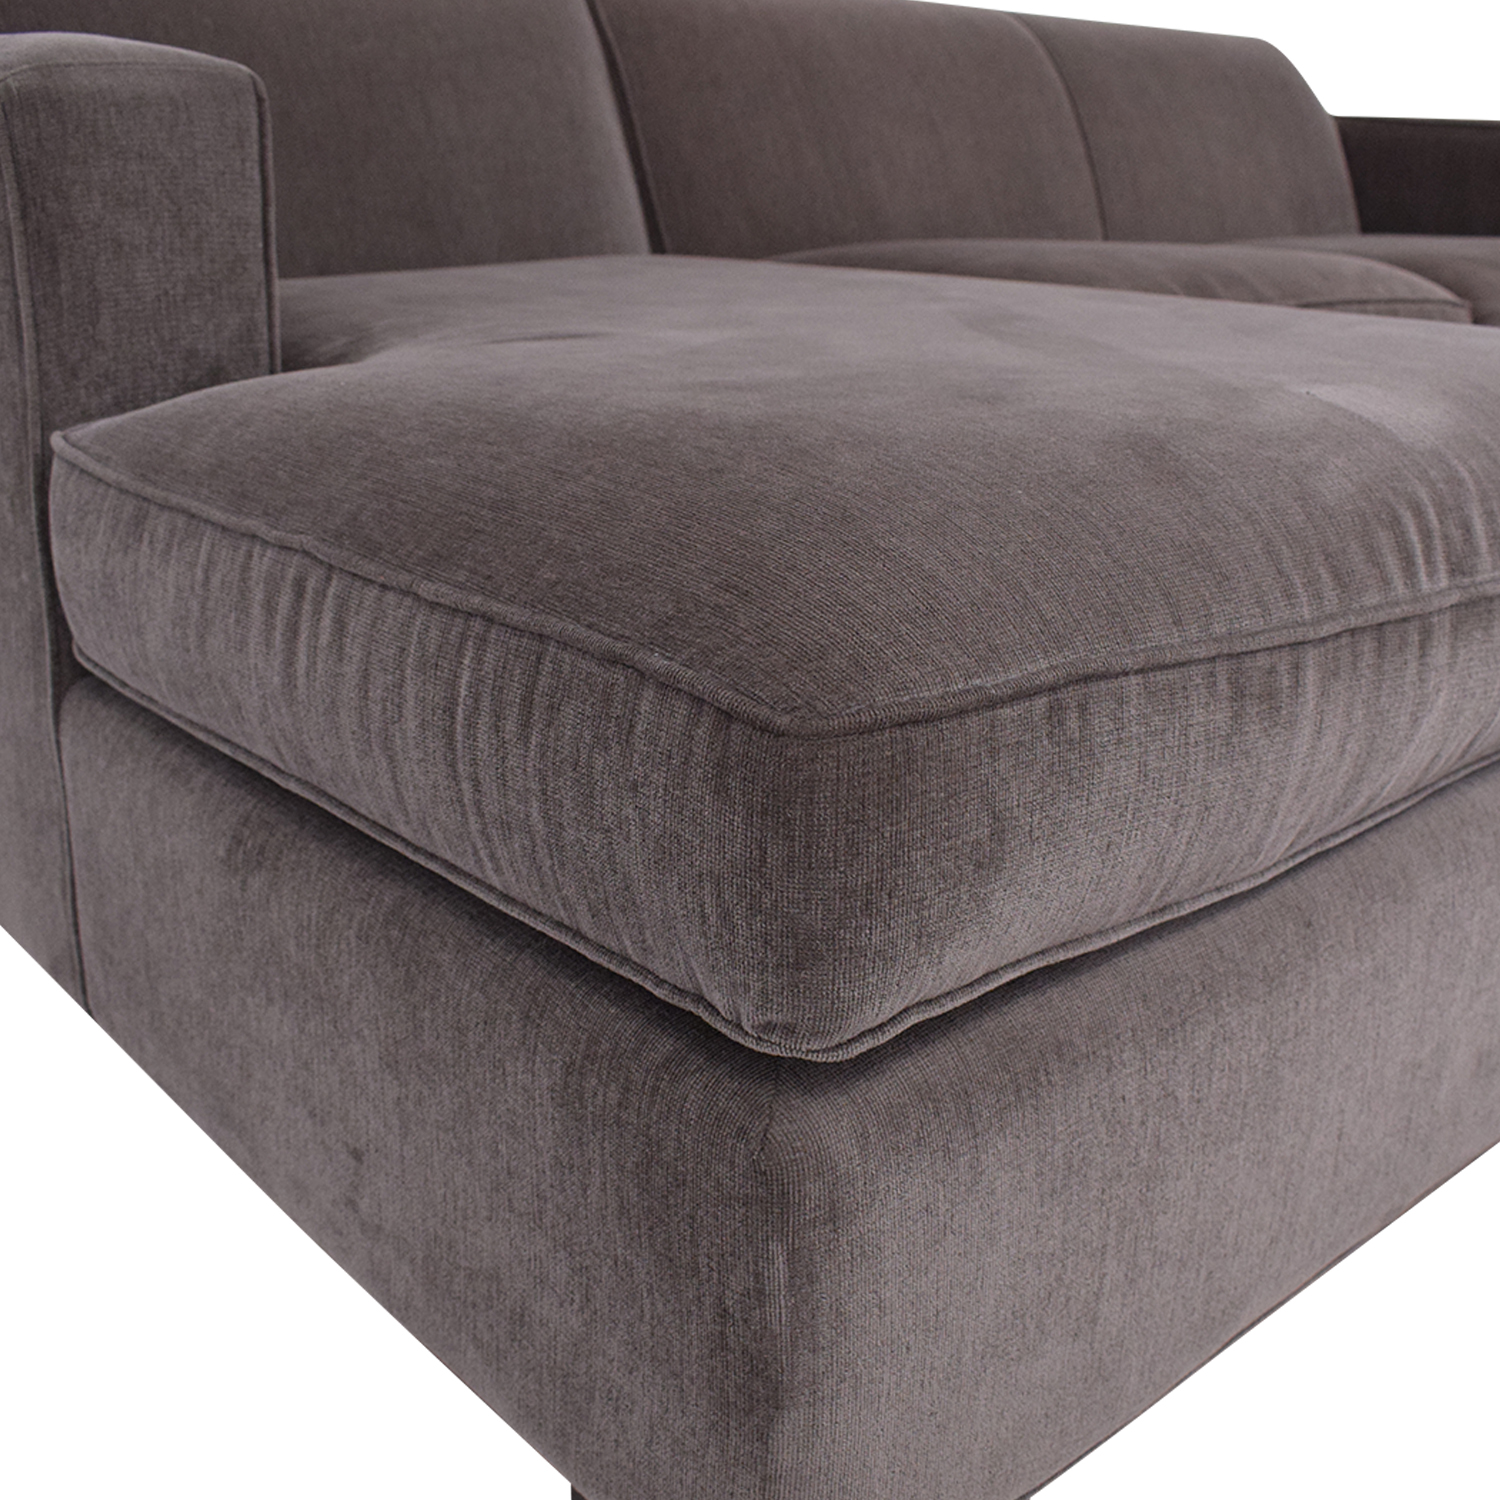 Room & Board Room & Board Ian Sectional Sofa with Chaise Sofas